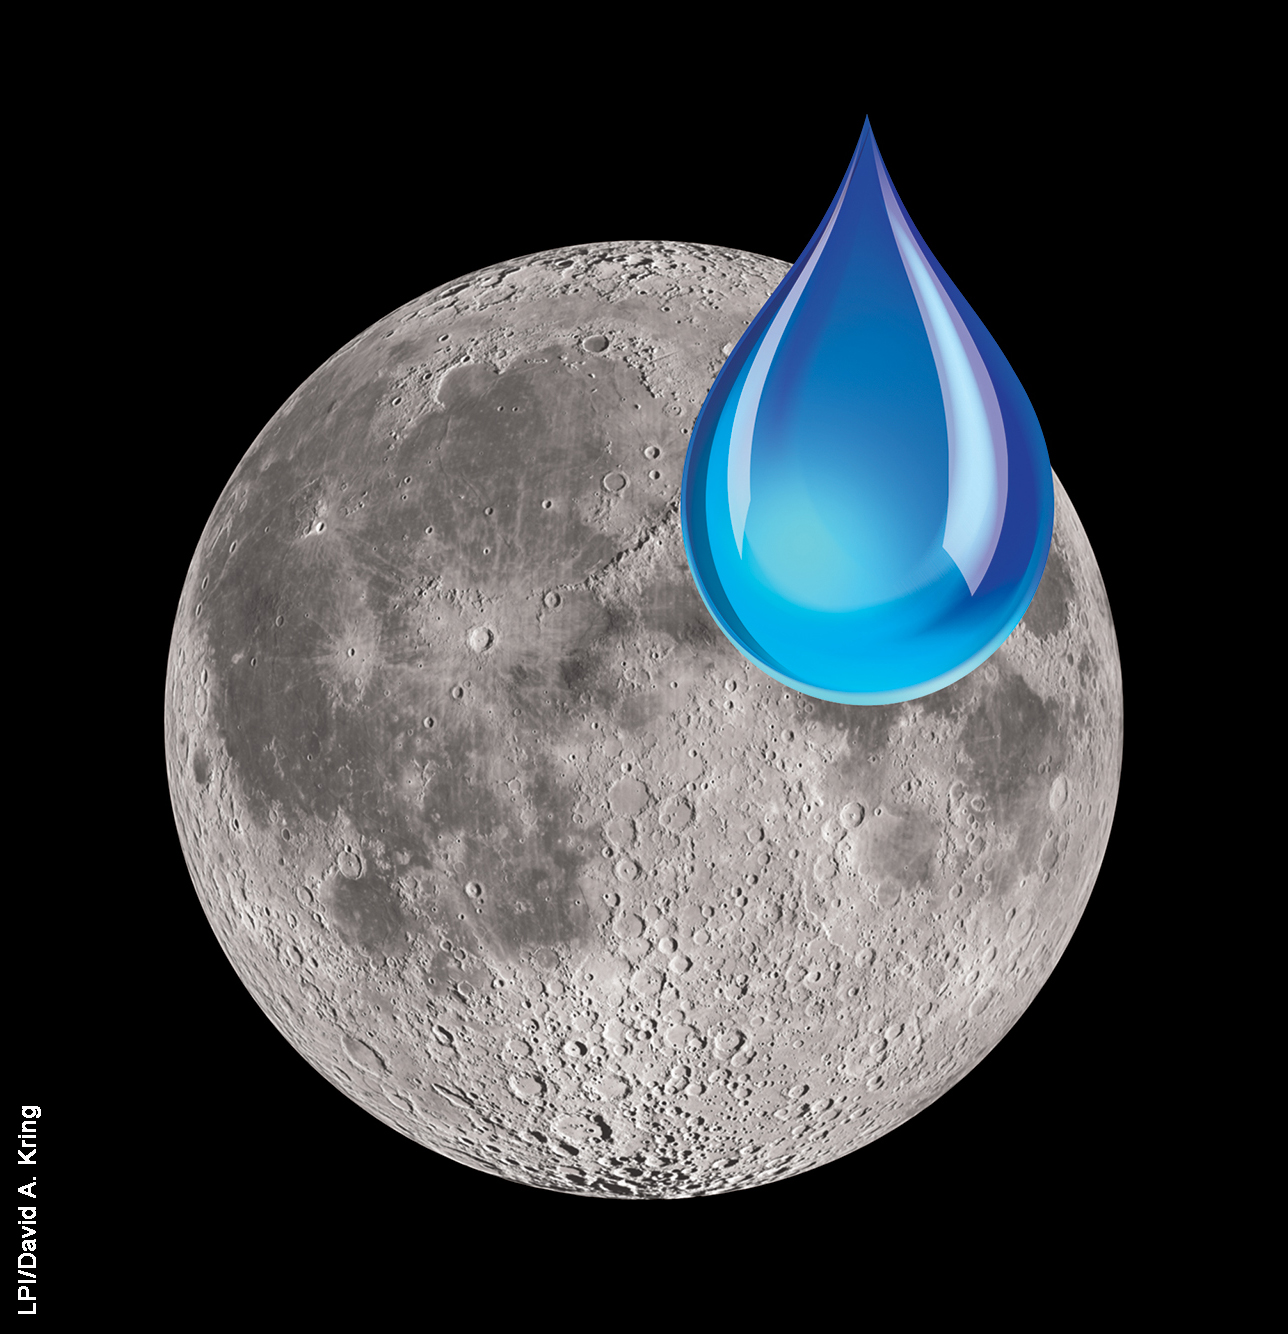 Source of Lunar Water 1 (LPI, David A. Kring)